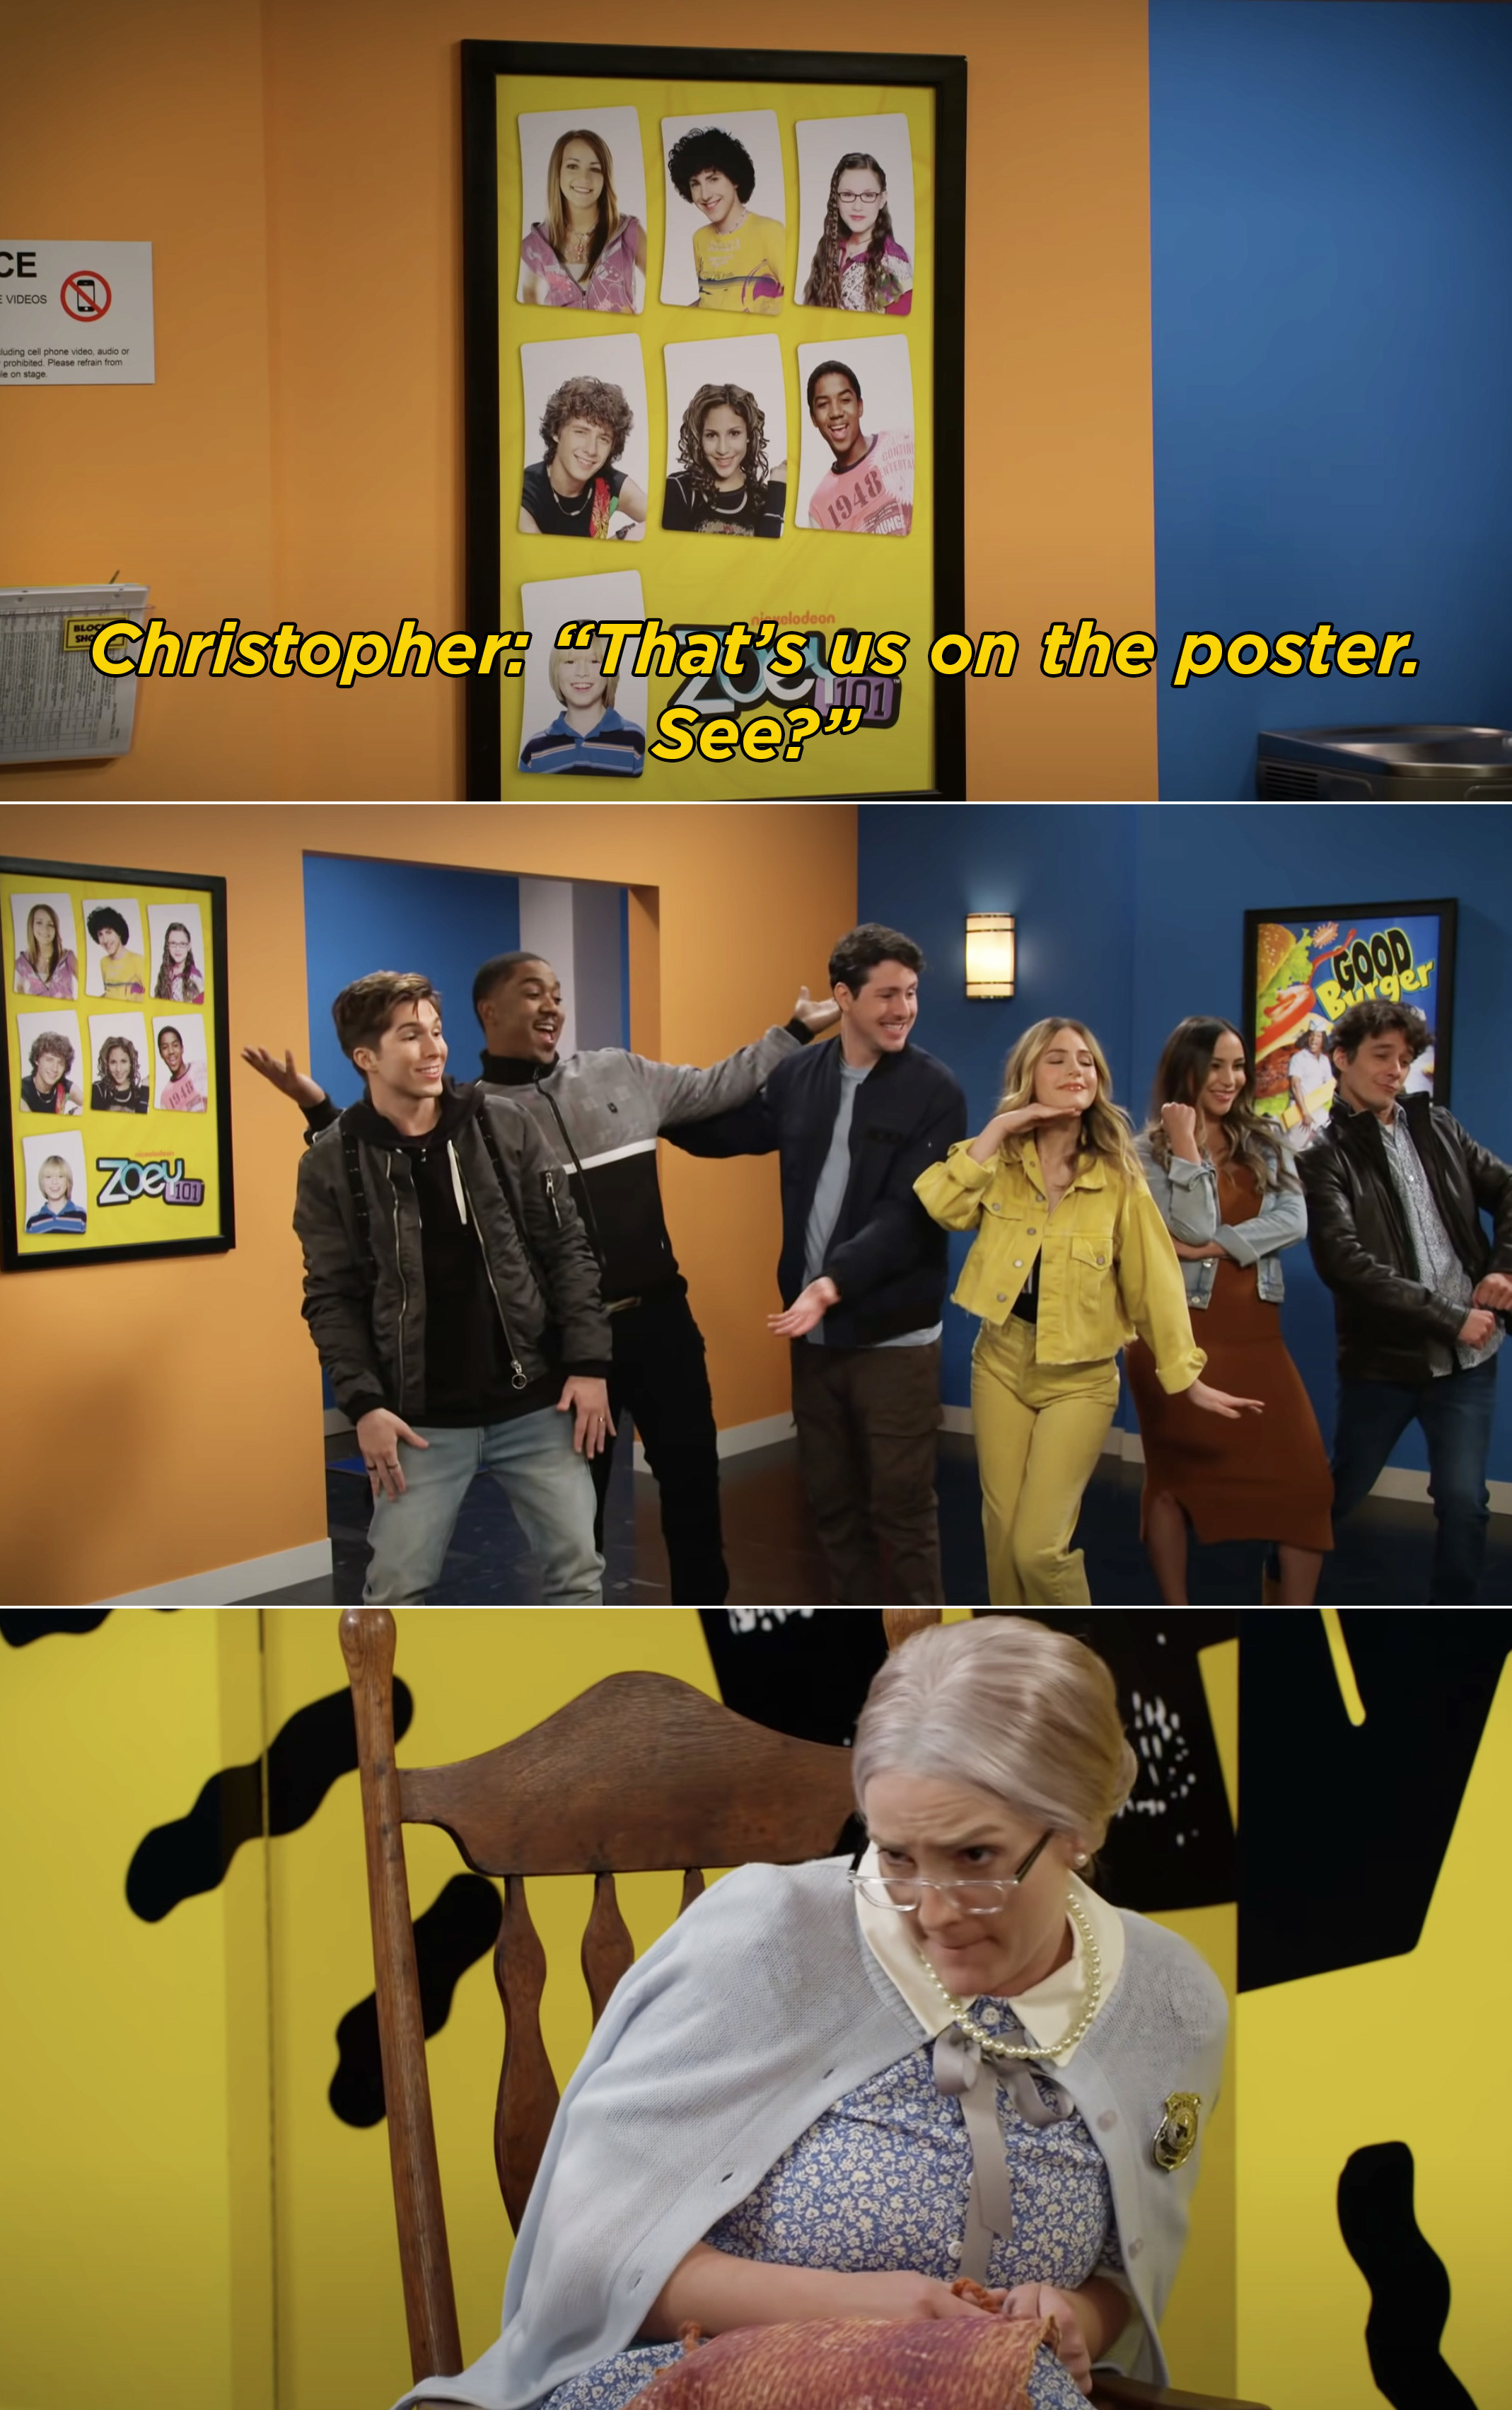 The Zoey 101 cast trying to prove to the elderly Thelma Stump that they are really the cast by posing like the poster